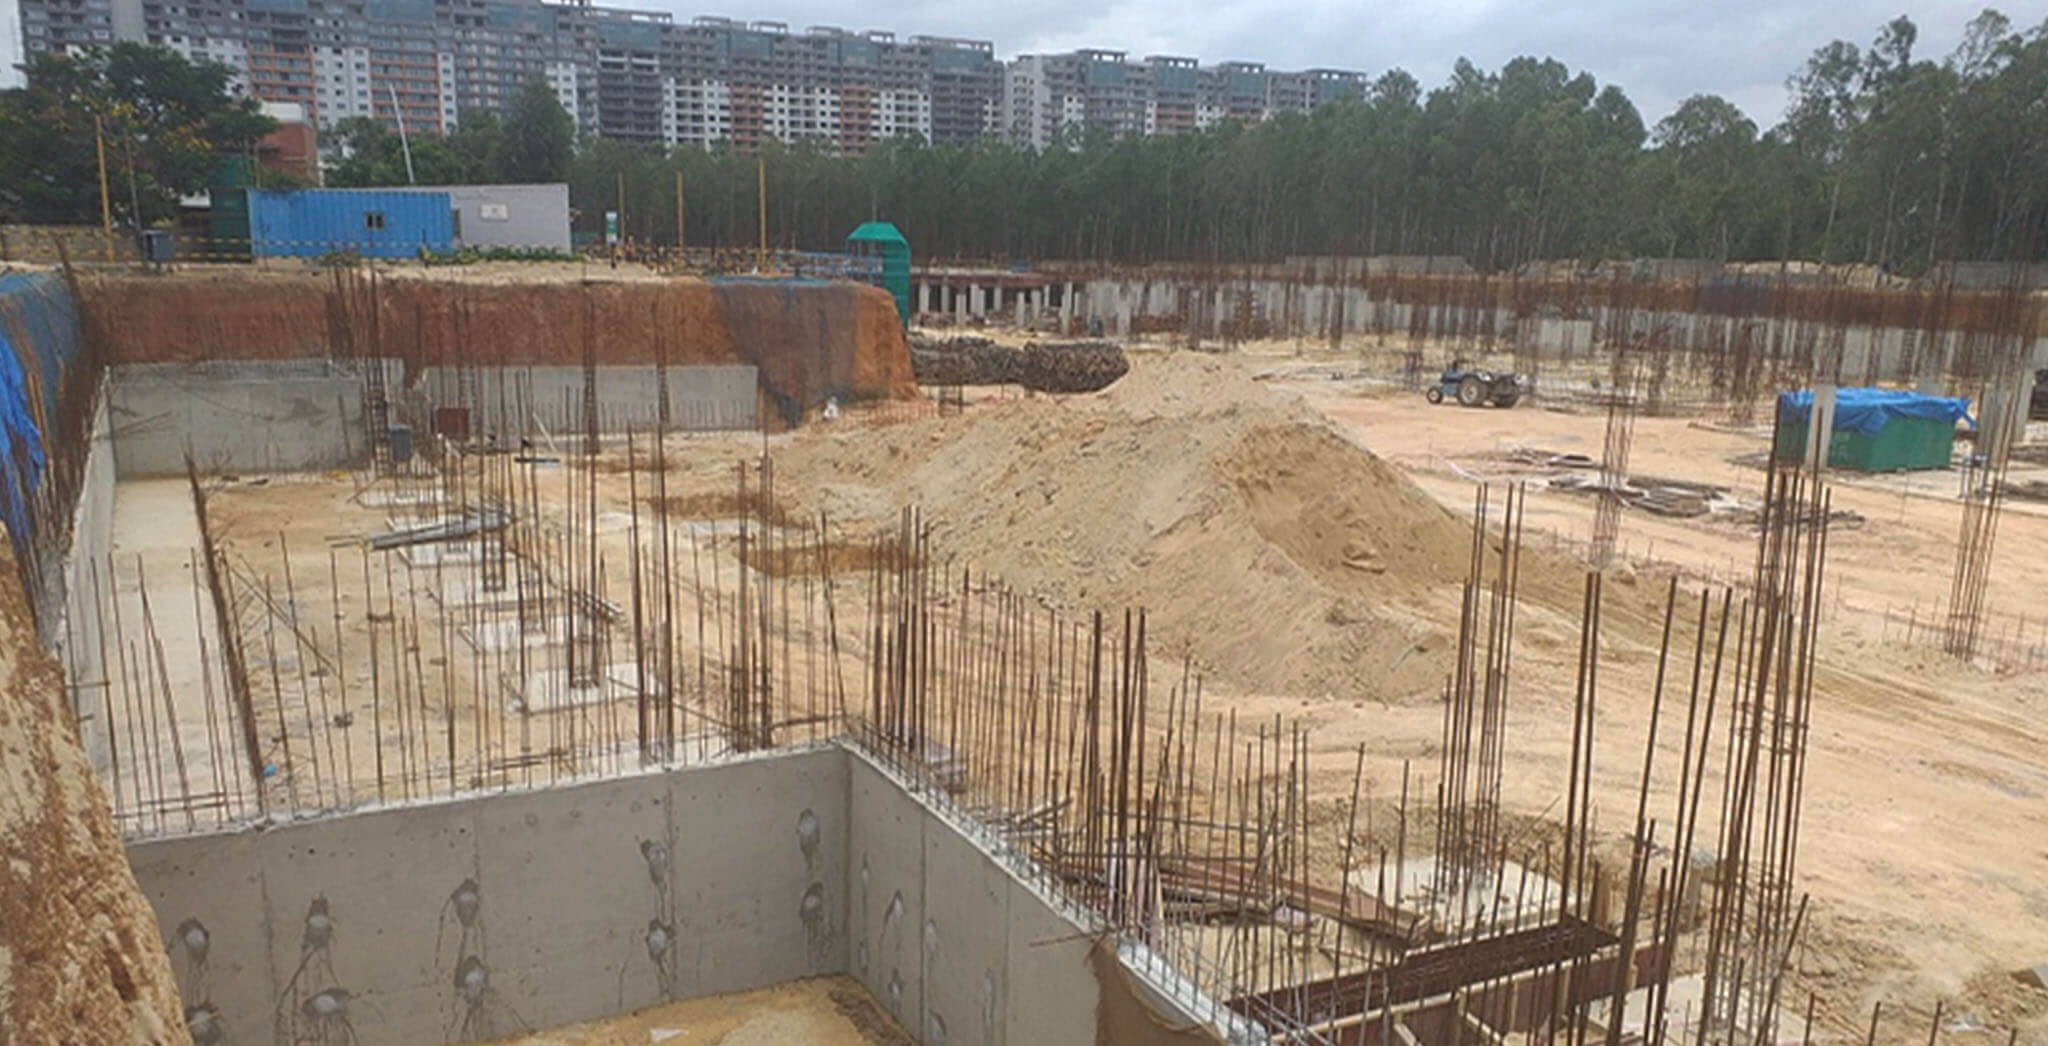 Aug 2019 - South side view: Rainwater Sump-04 wall concreting completed • D and C Block Retaining wall Concreting completed • D and E Block footings under progress